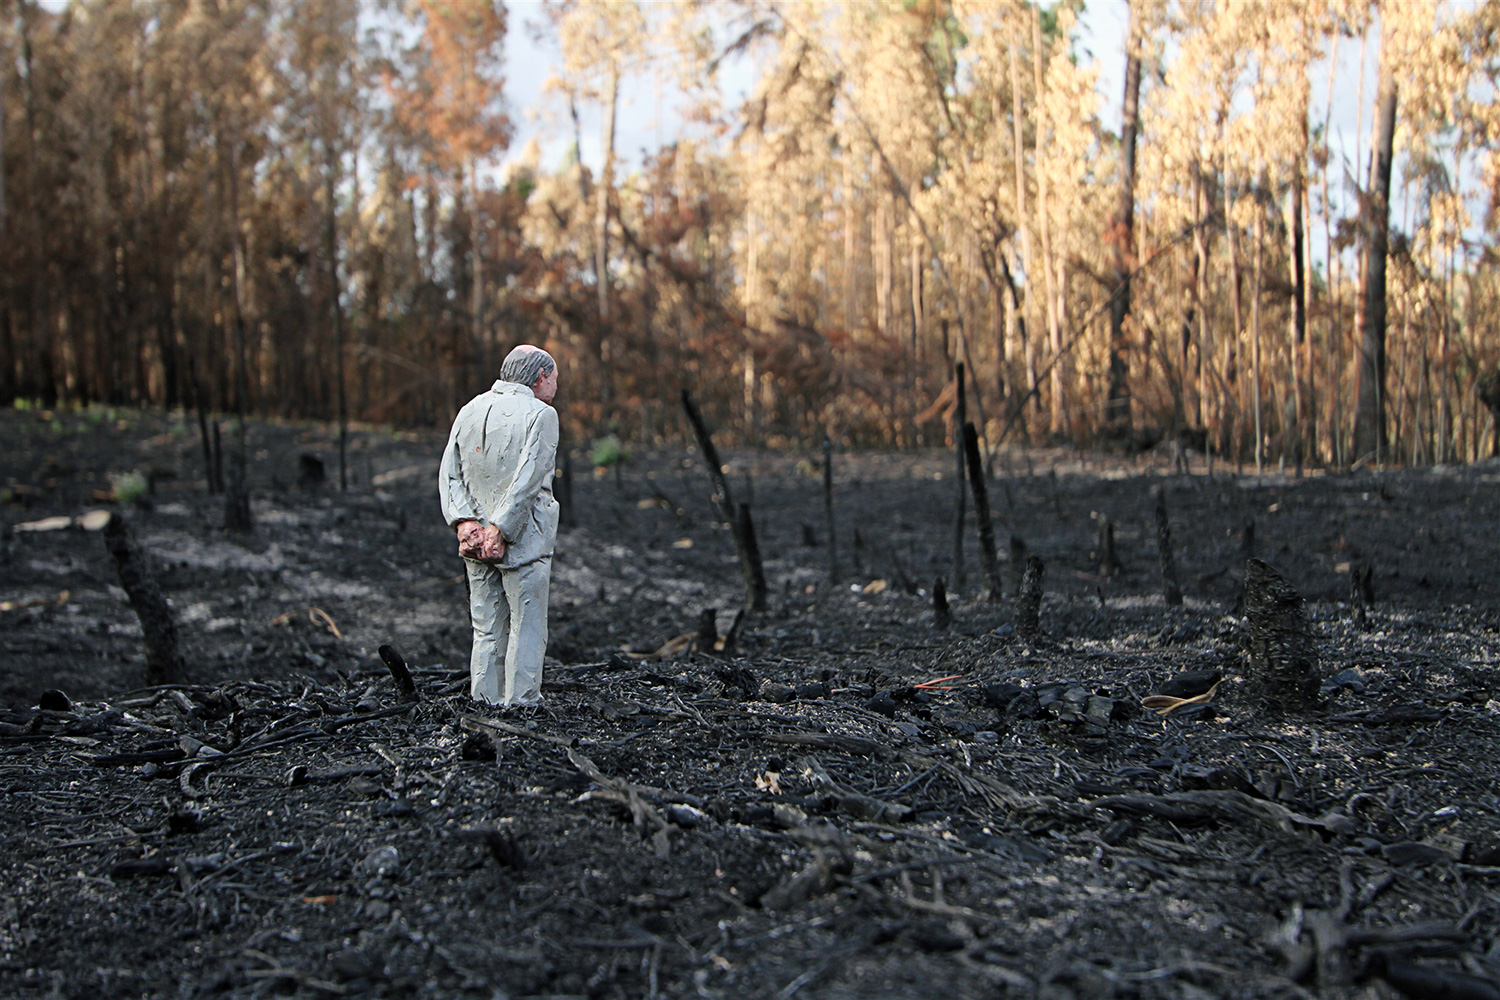 Isaac Cordal - old man in burned-out forest